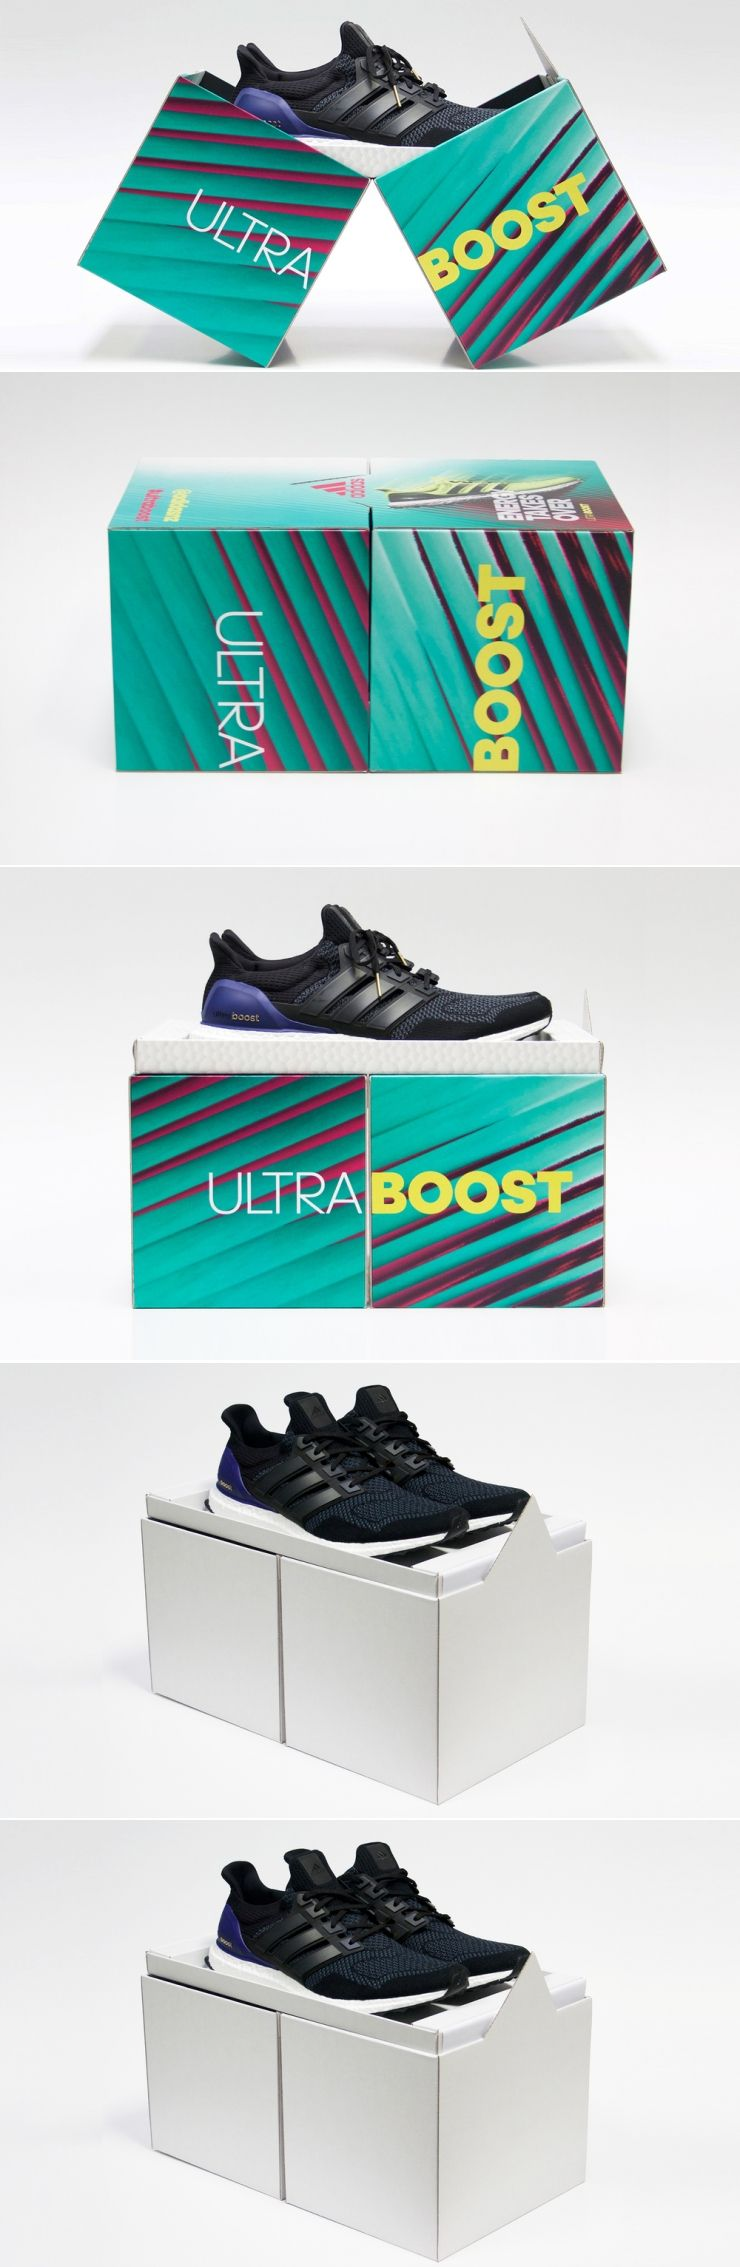 952bcf3a1302a Adidas Ultra Boost — The Dieline